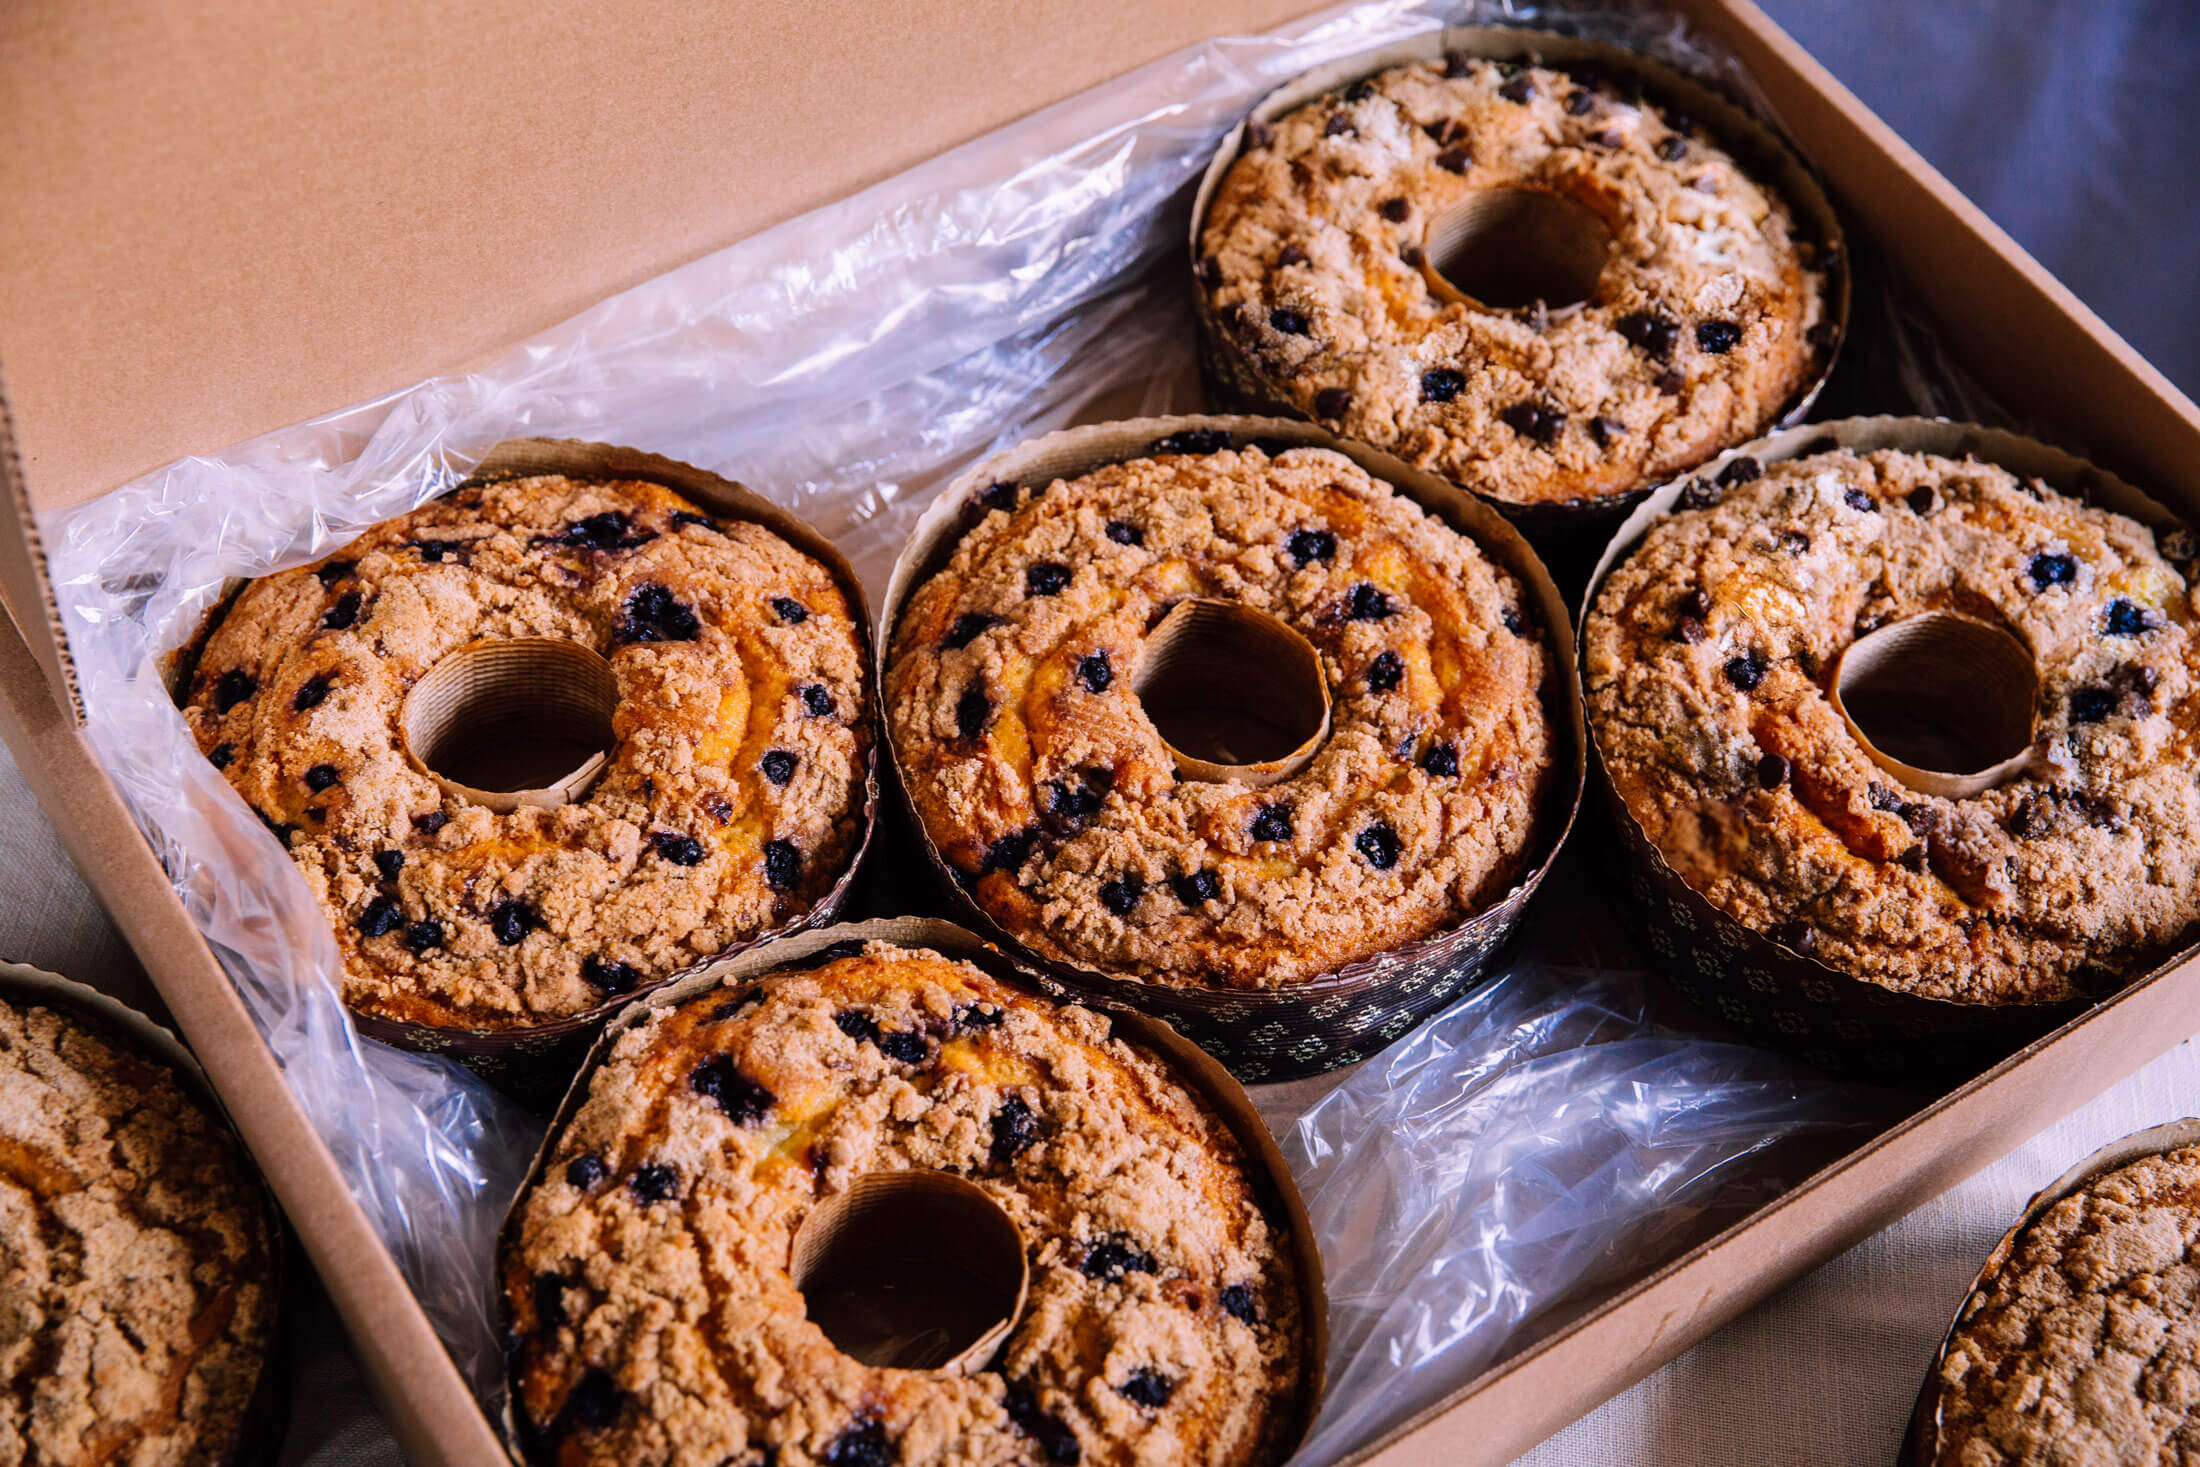 A boxed shipment of Boston Baking Coffee Cakes